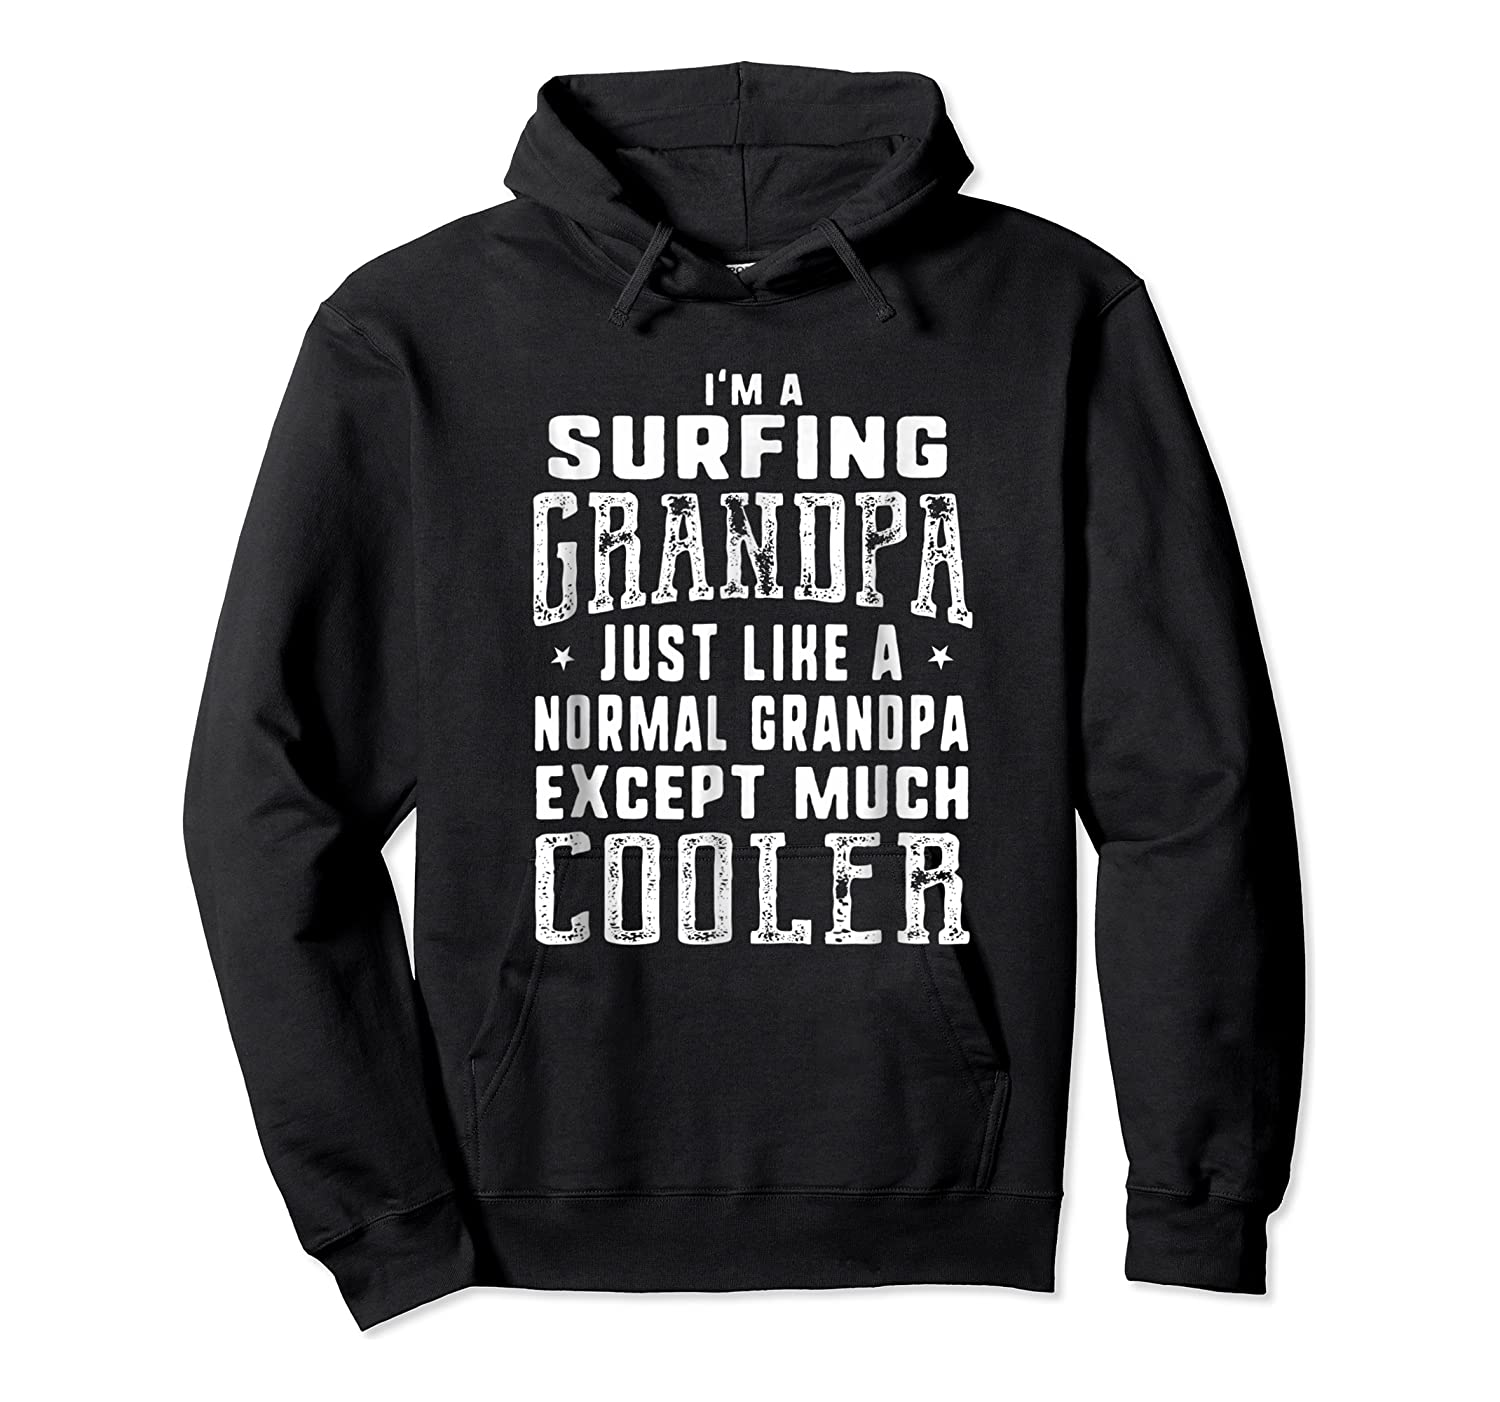 Surfing Grandpa Like A Normal Grandpa Funny T-shirt Unisex Pullover Hoodie